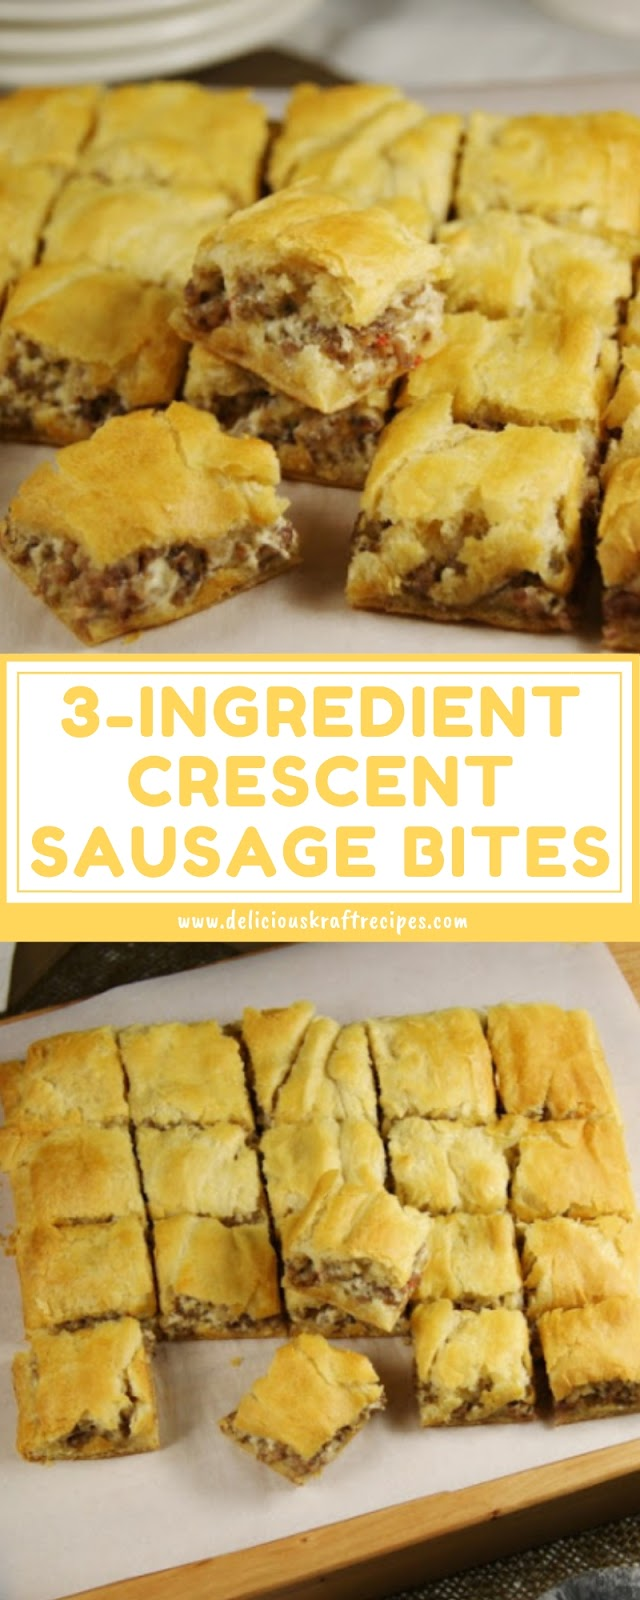 3-INGREDIENT CRESCENT SAUSAGE BITES